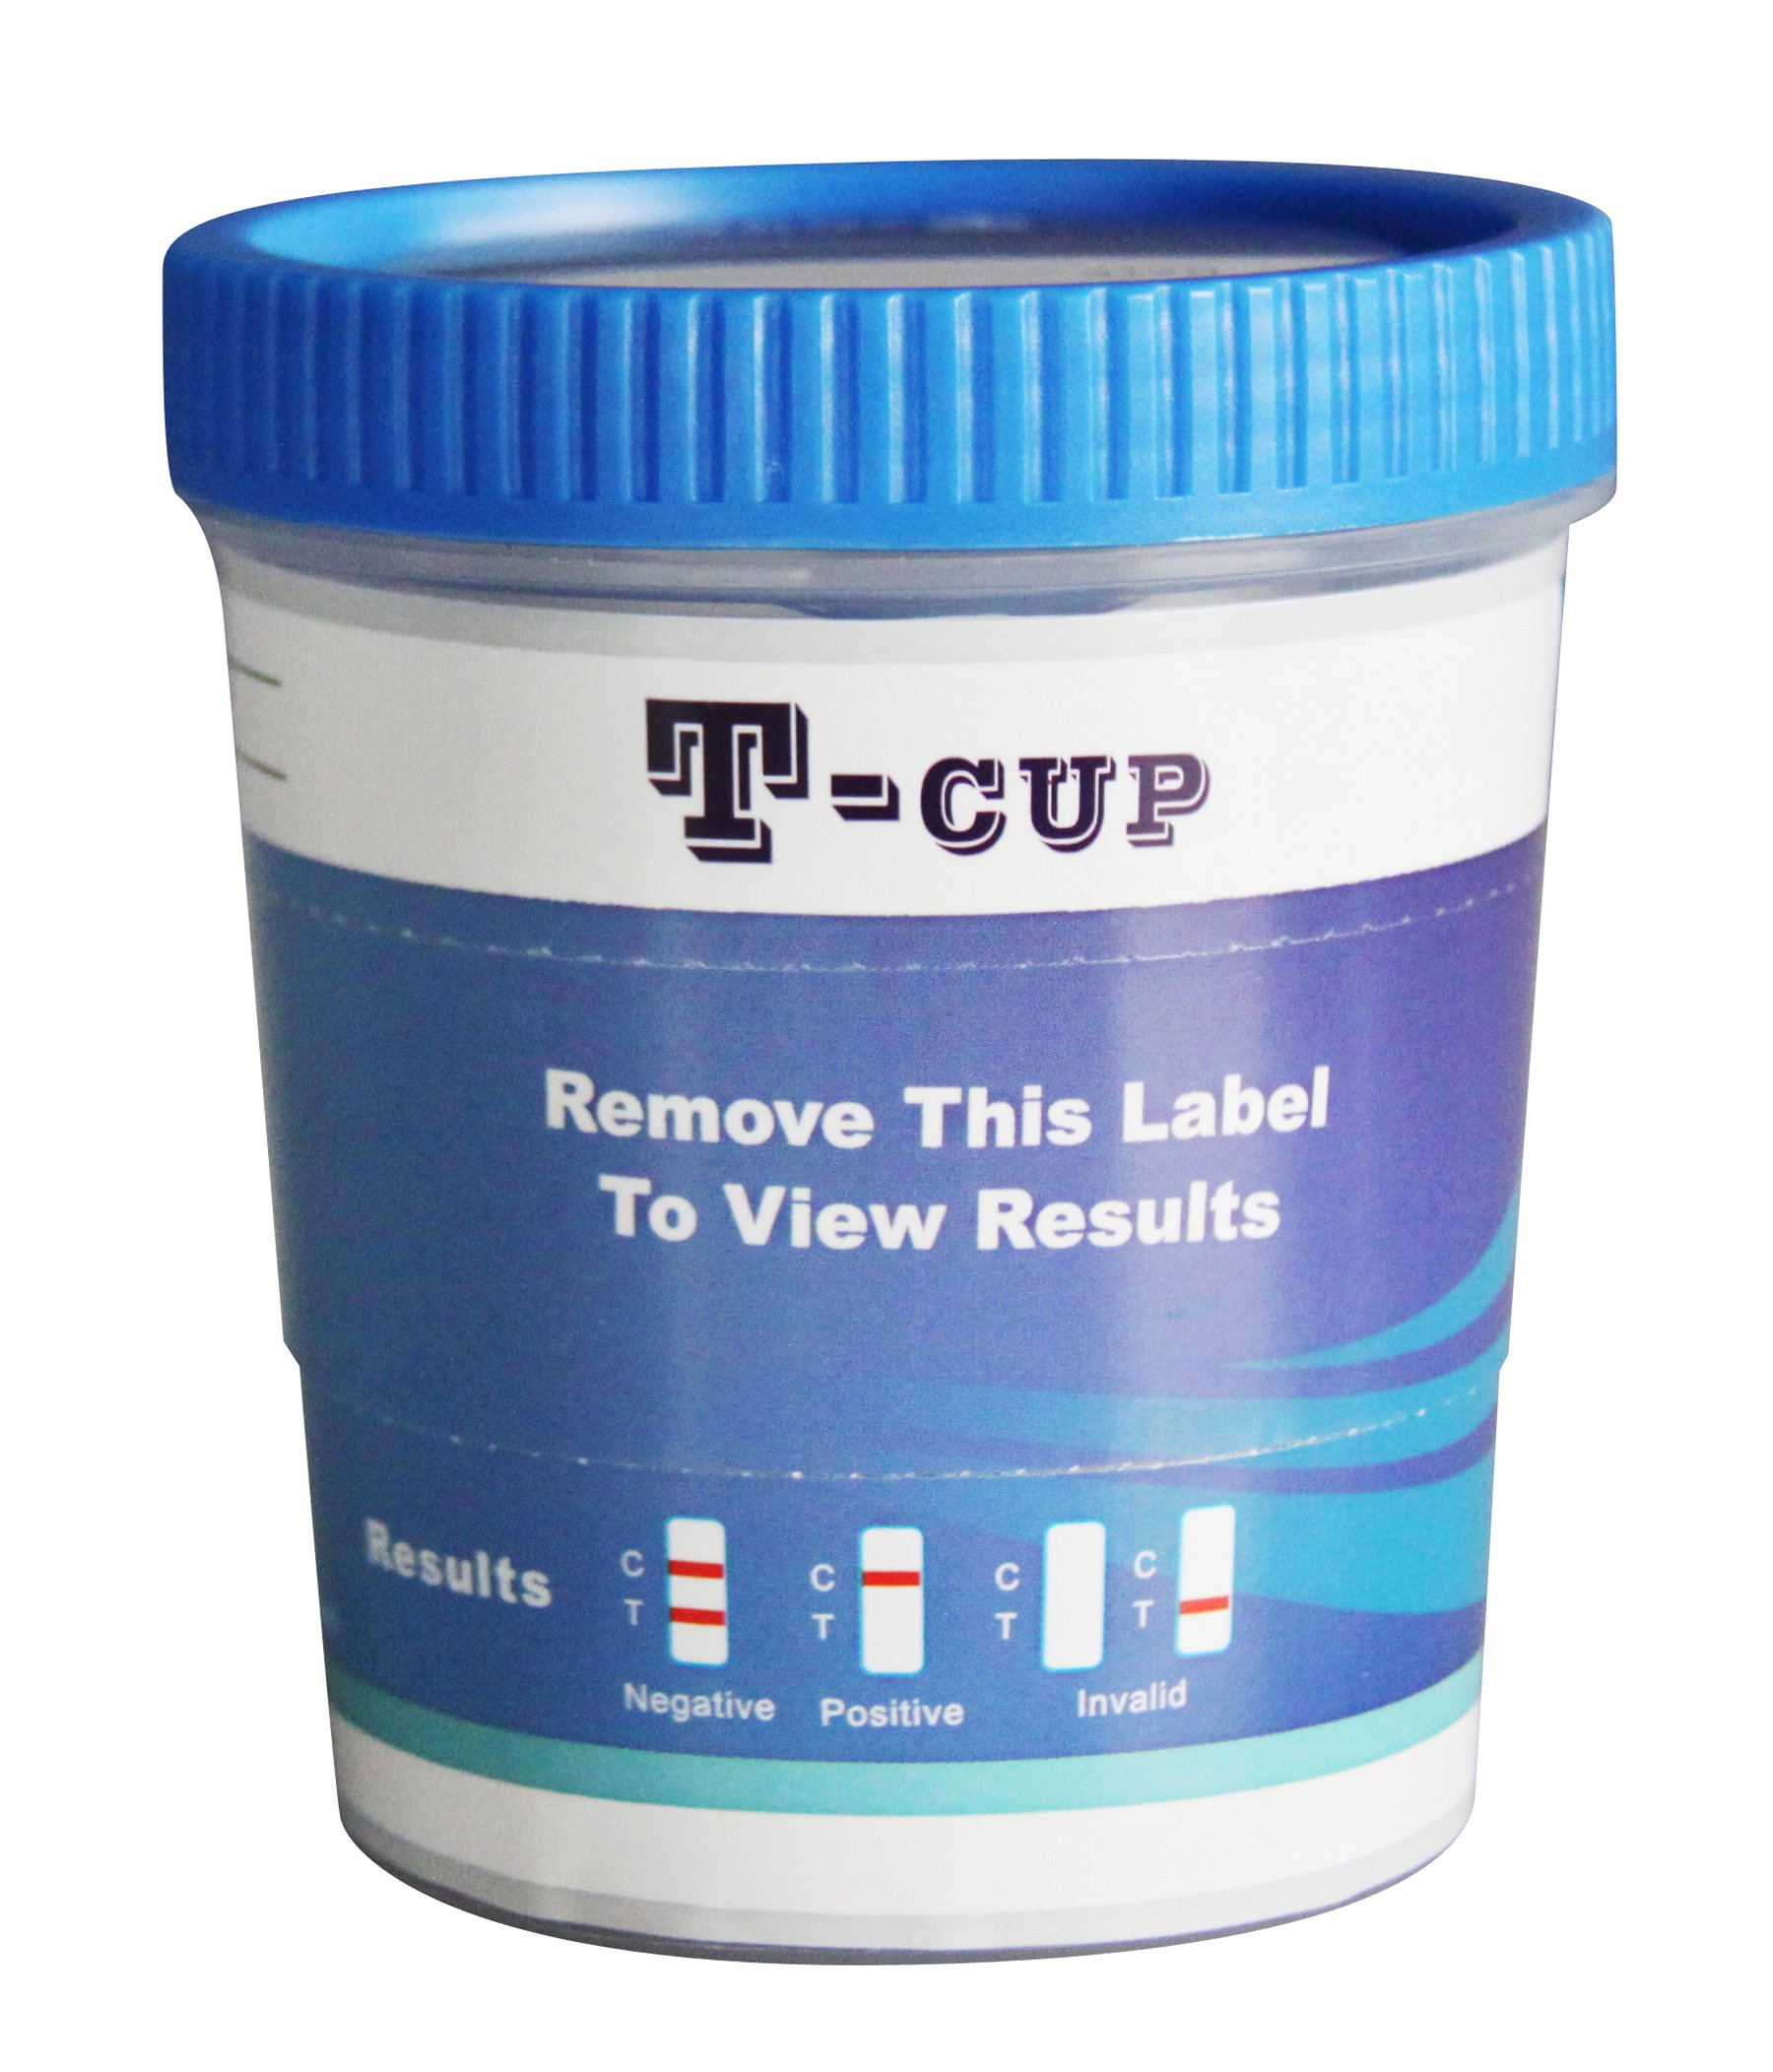 12 Panel T-Cup Multi Drug Urine Test Kit (500)(Multiple Quantities)(COC/THC/OPI/AMP/mAMP/BAR/BZO/BUP/OXY/MTD/MDMA/PCP)